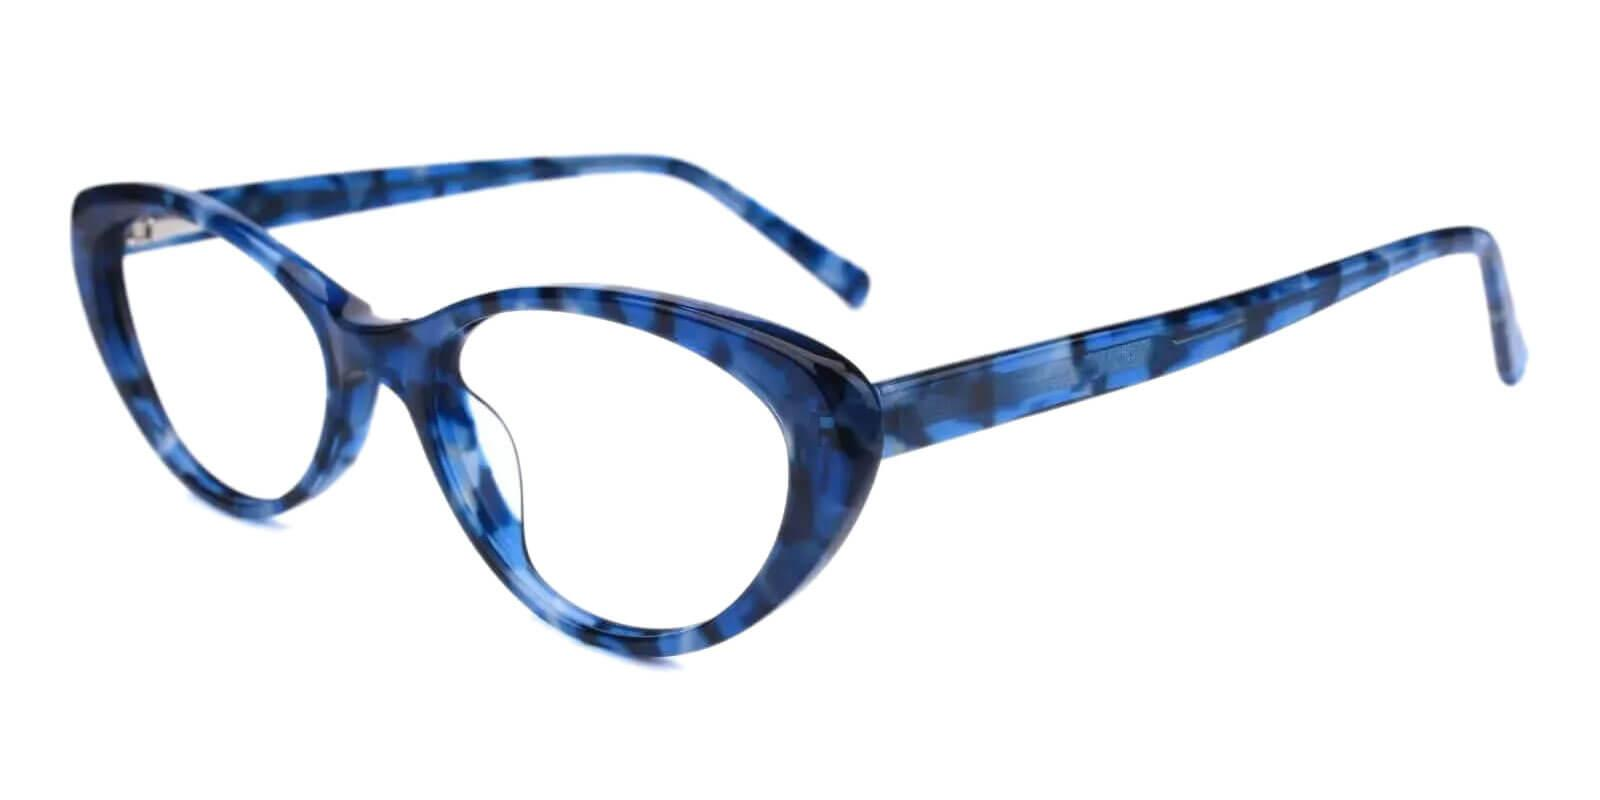 Elena Blue Acetate Eyeglasses , UniversalBridgeFit Frames from ABBE Glasses